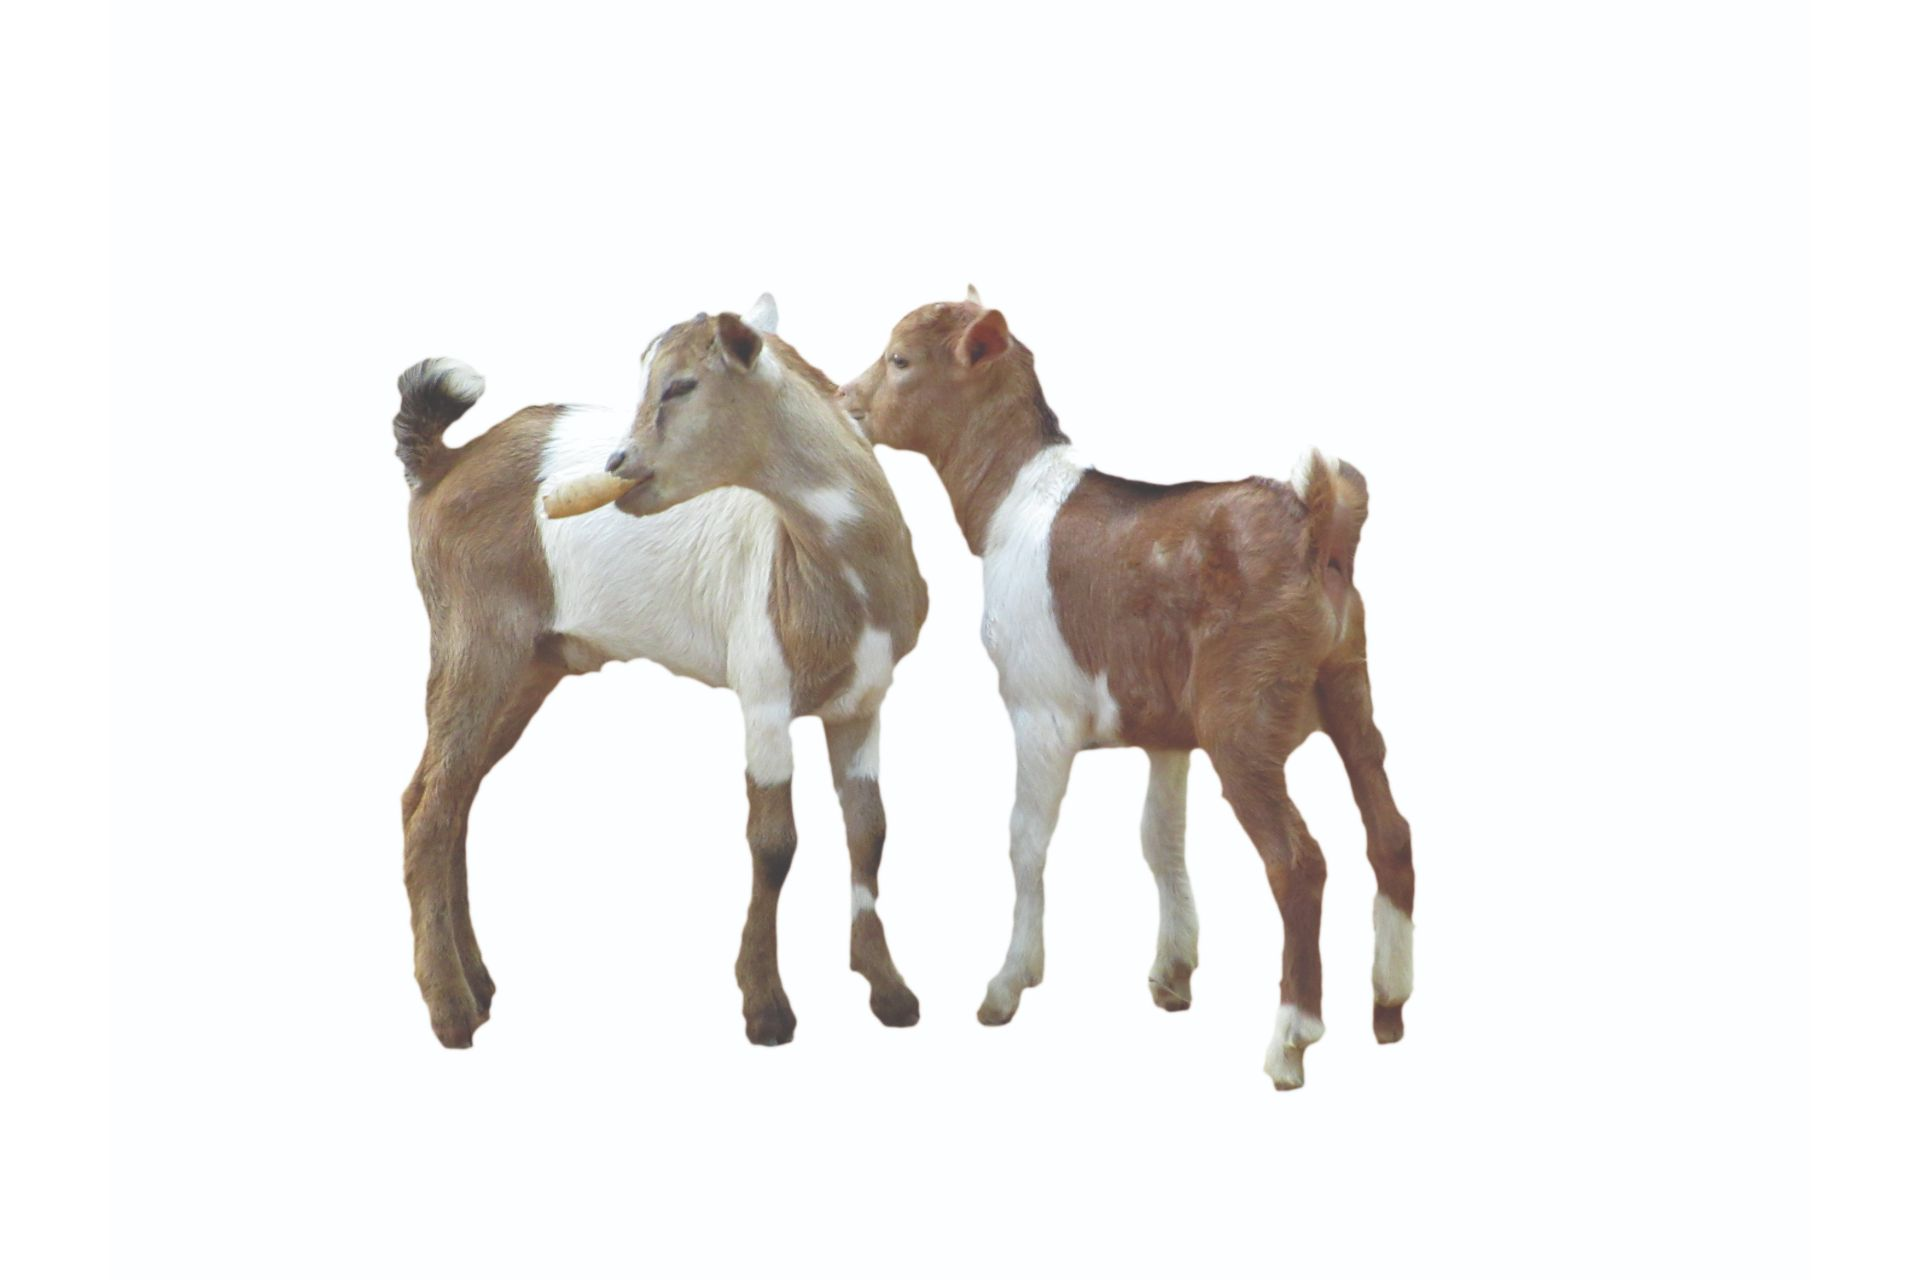 goats on a white background